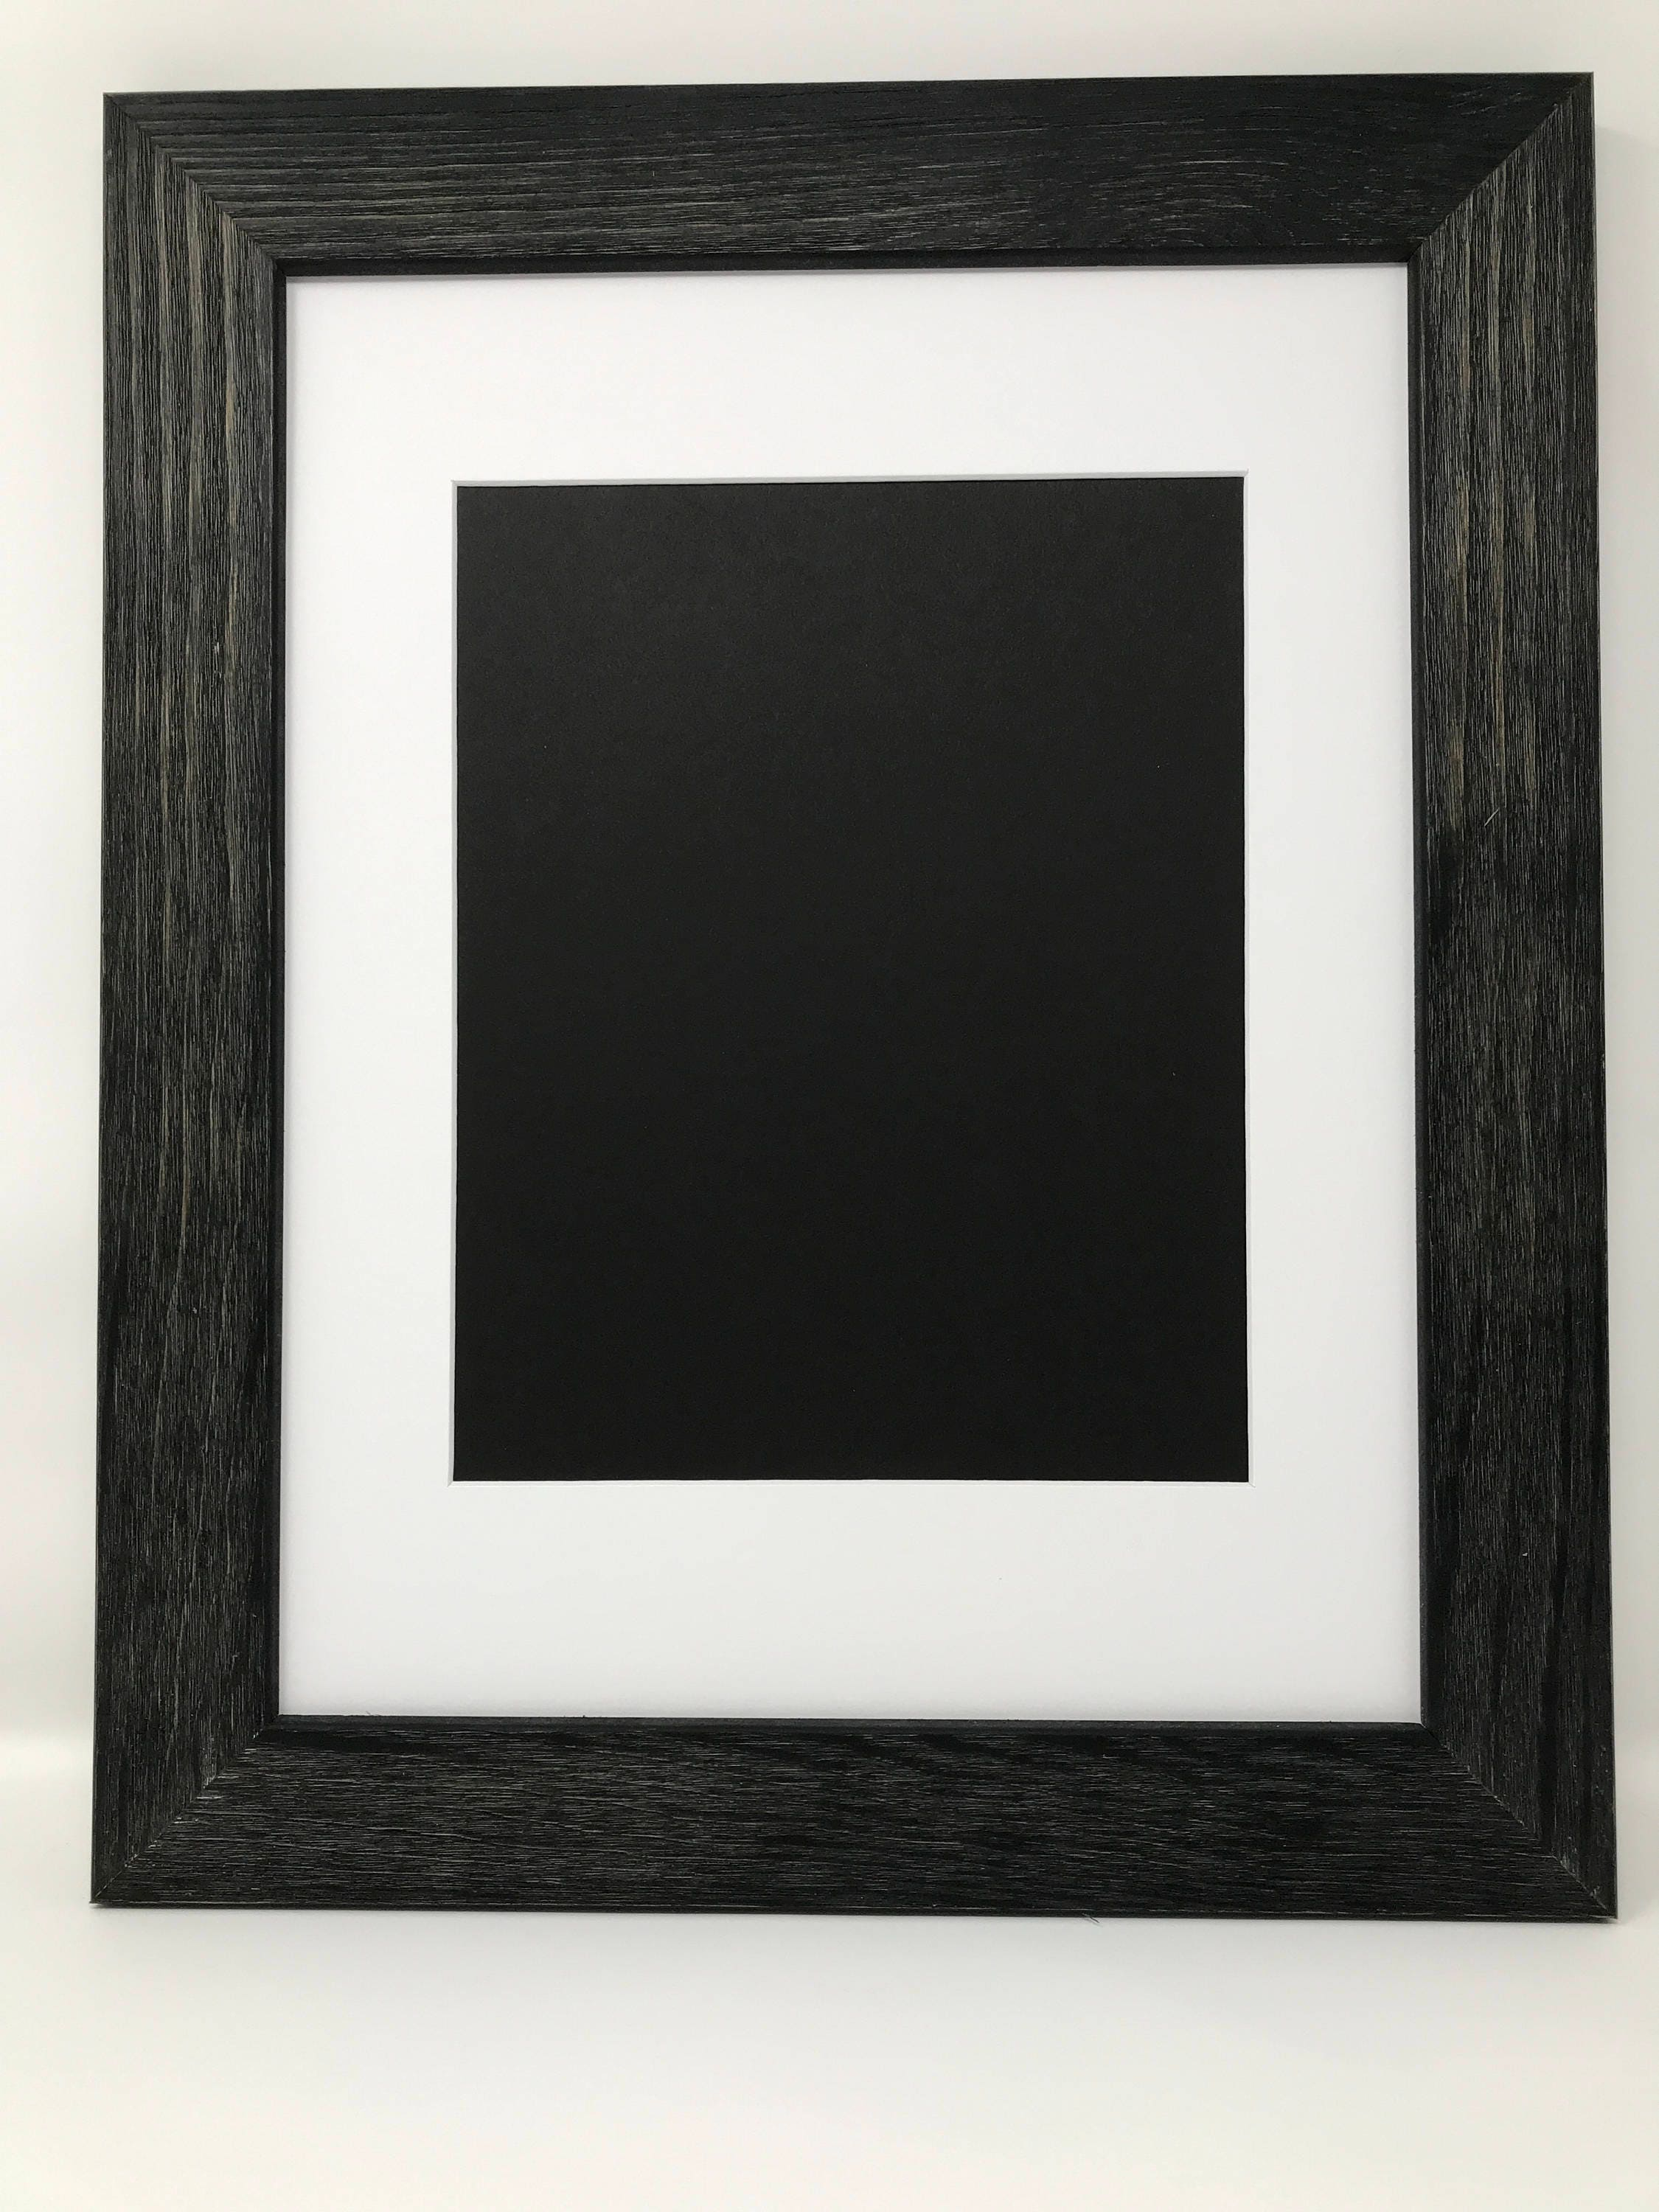 20x24 1.75 Rustic Black Solid Wood Picture Frame with White Mat Cut ...